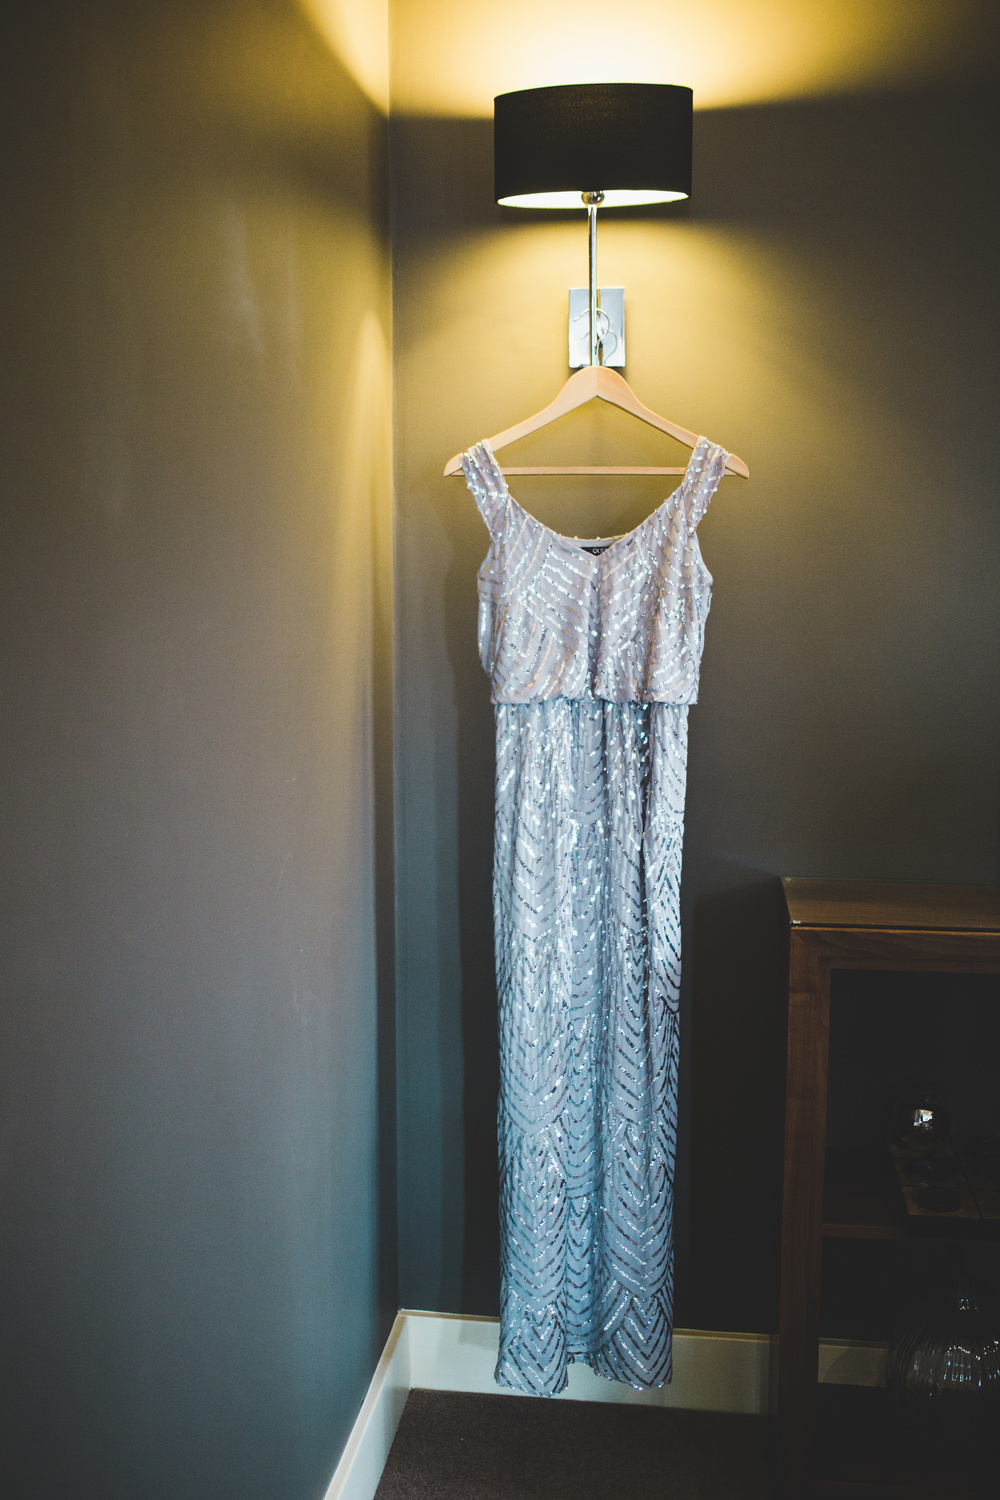 The maid of honour beautiful gown. for the cheshire wedding.